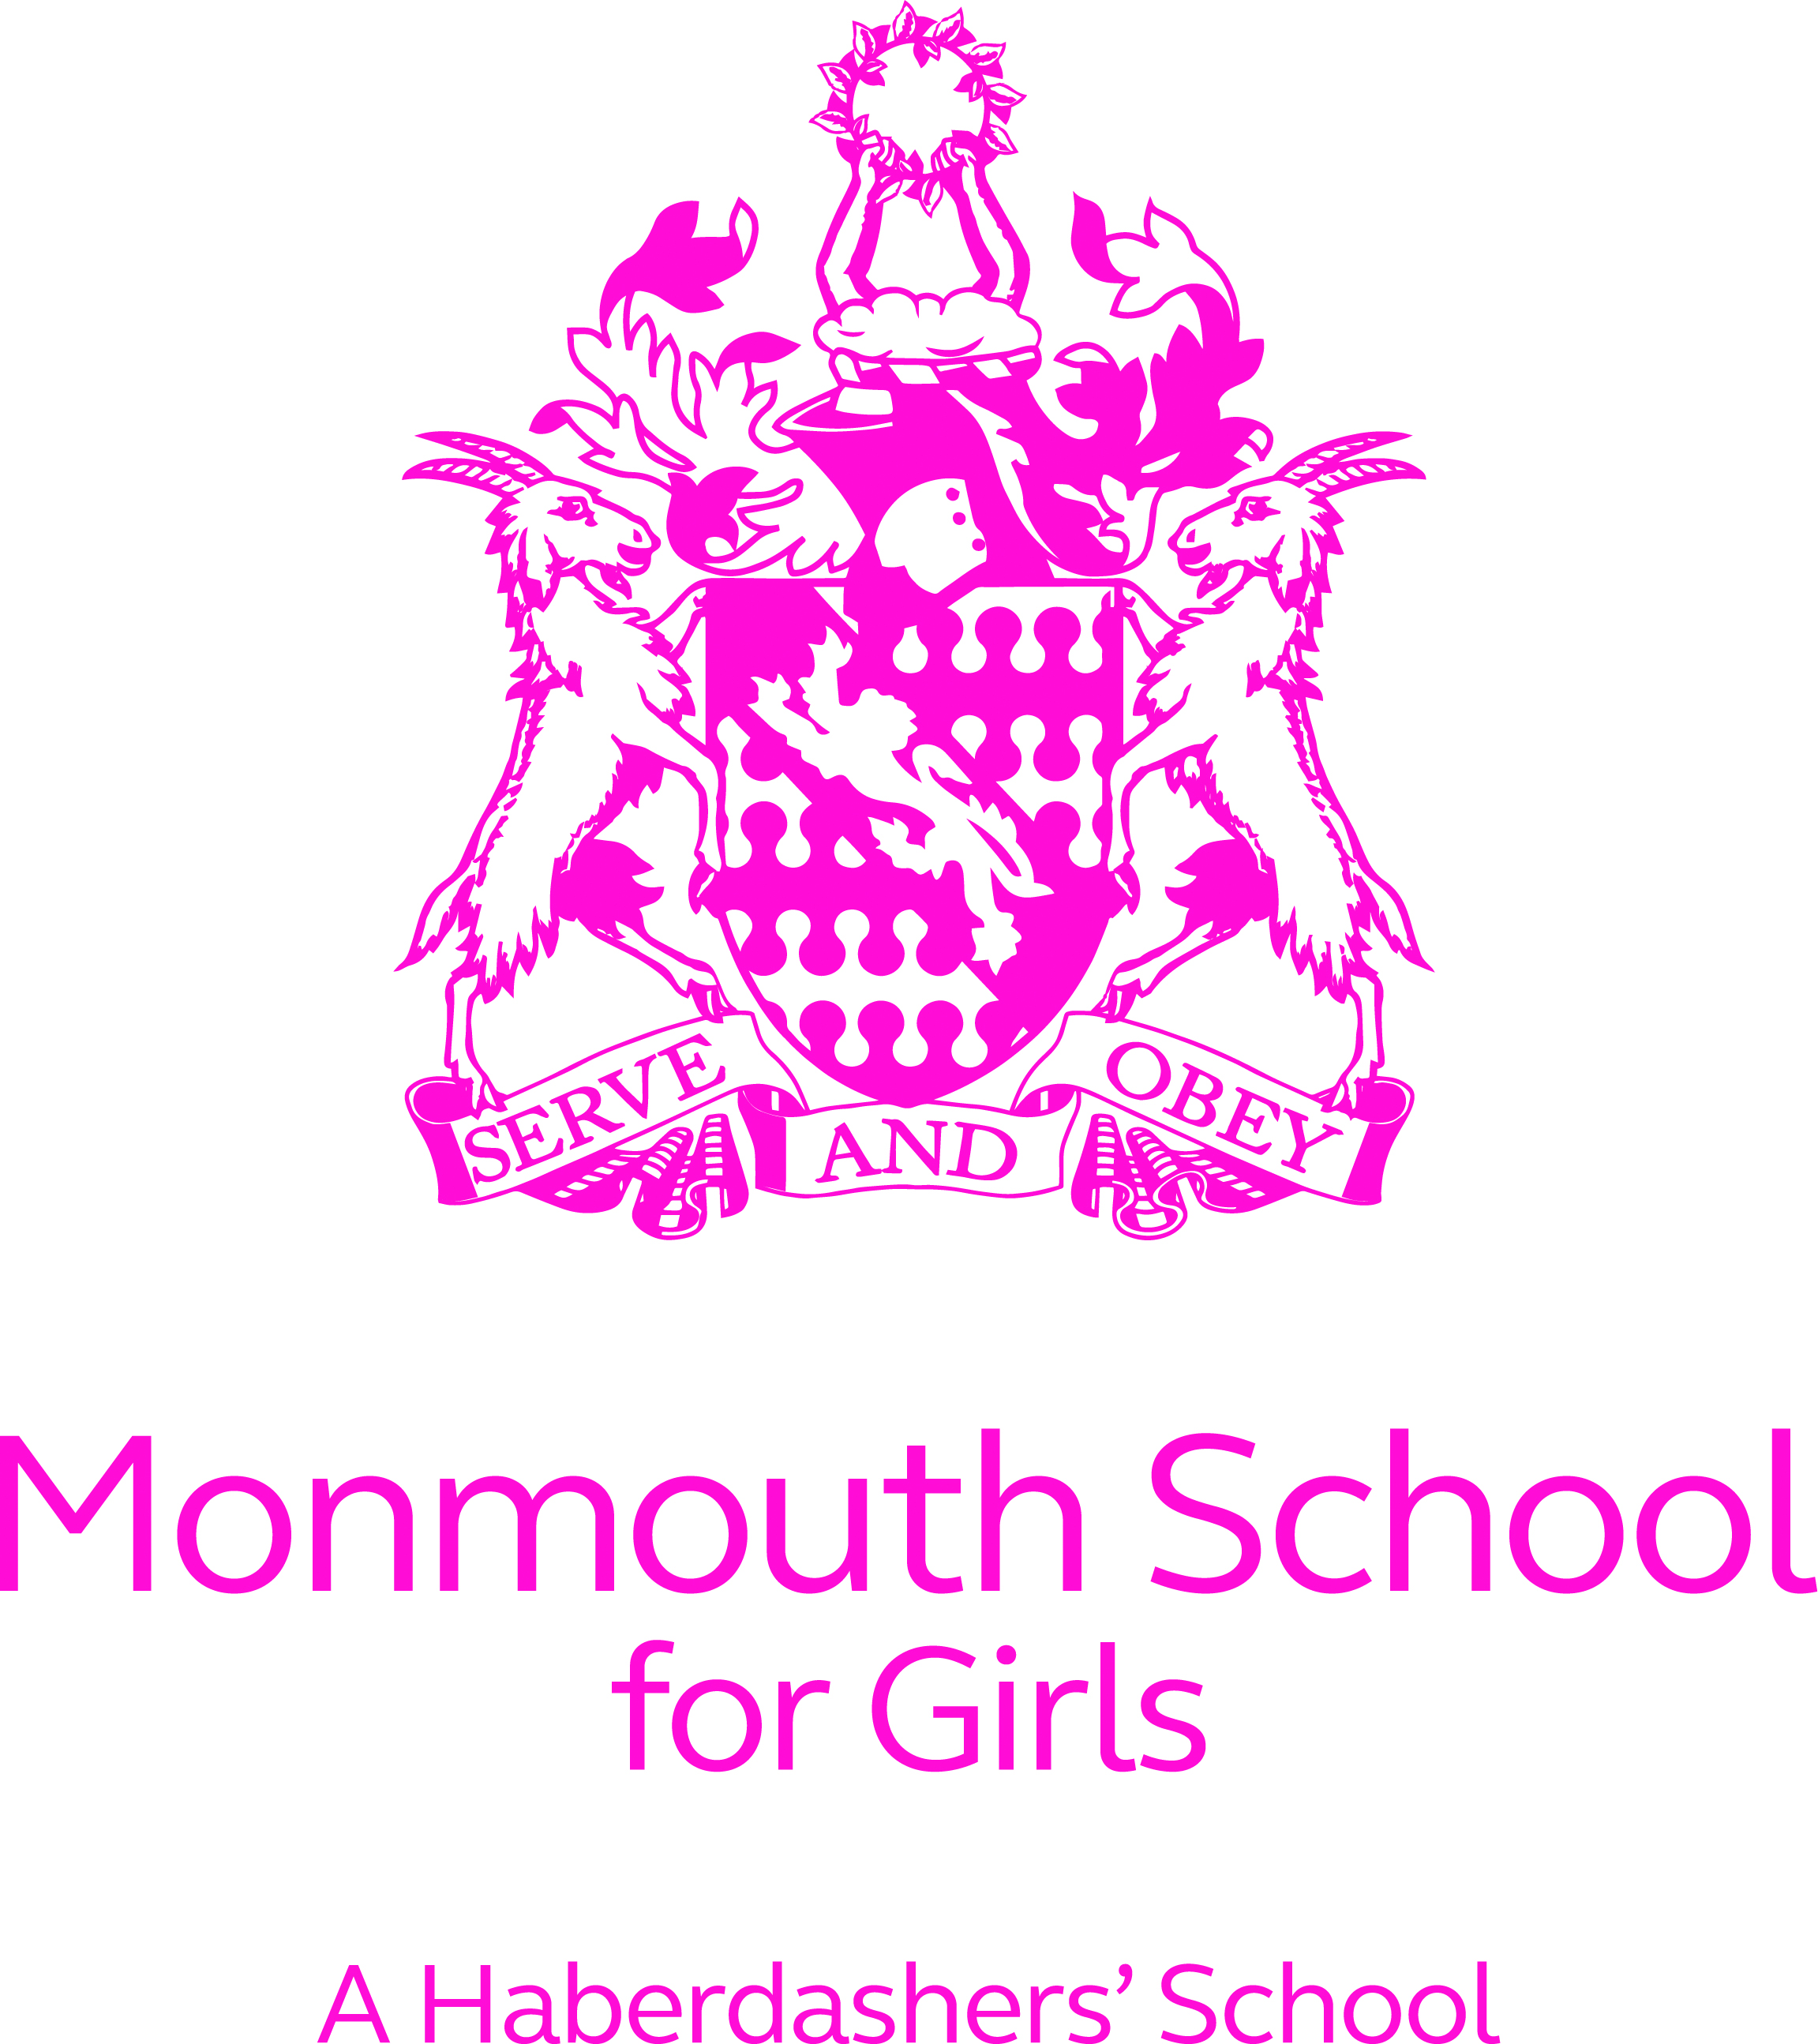 Monmouth School for Girls